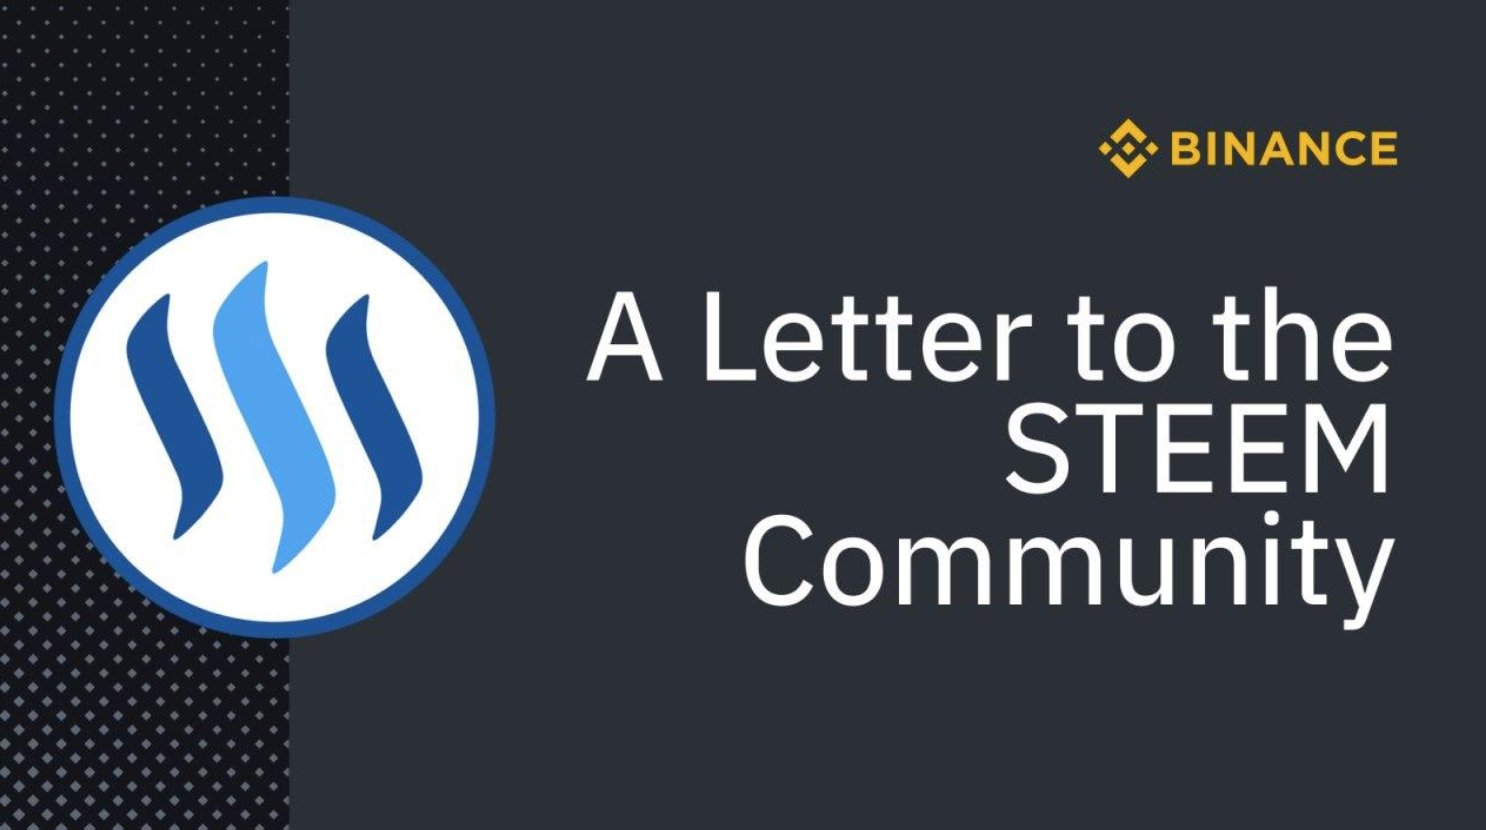 Exchanges voltam atrás e retiram votos a favor de Justin Sun na blockchain do Steemit